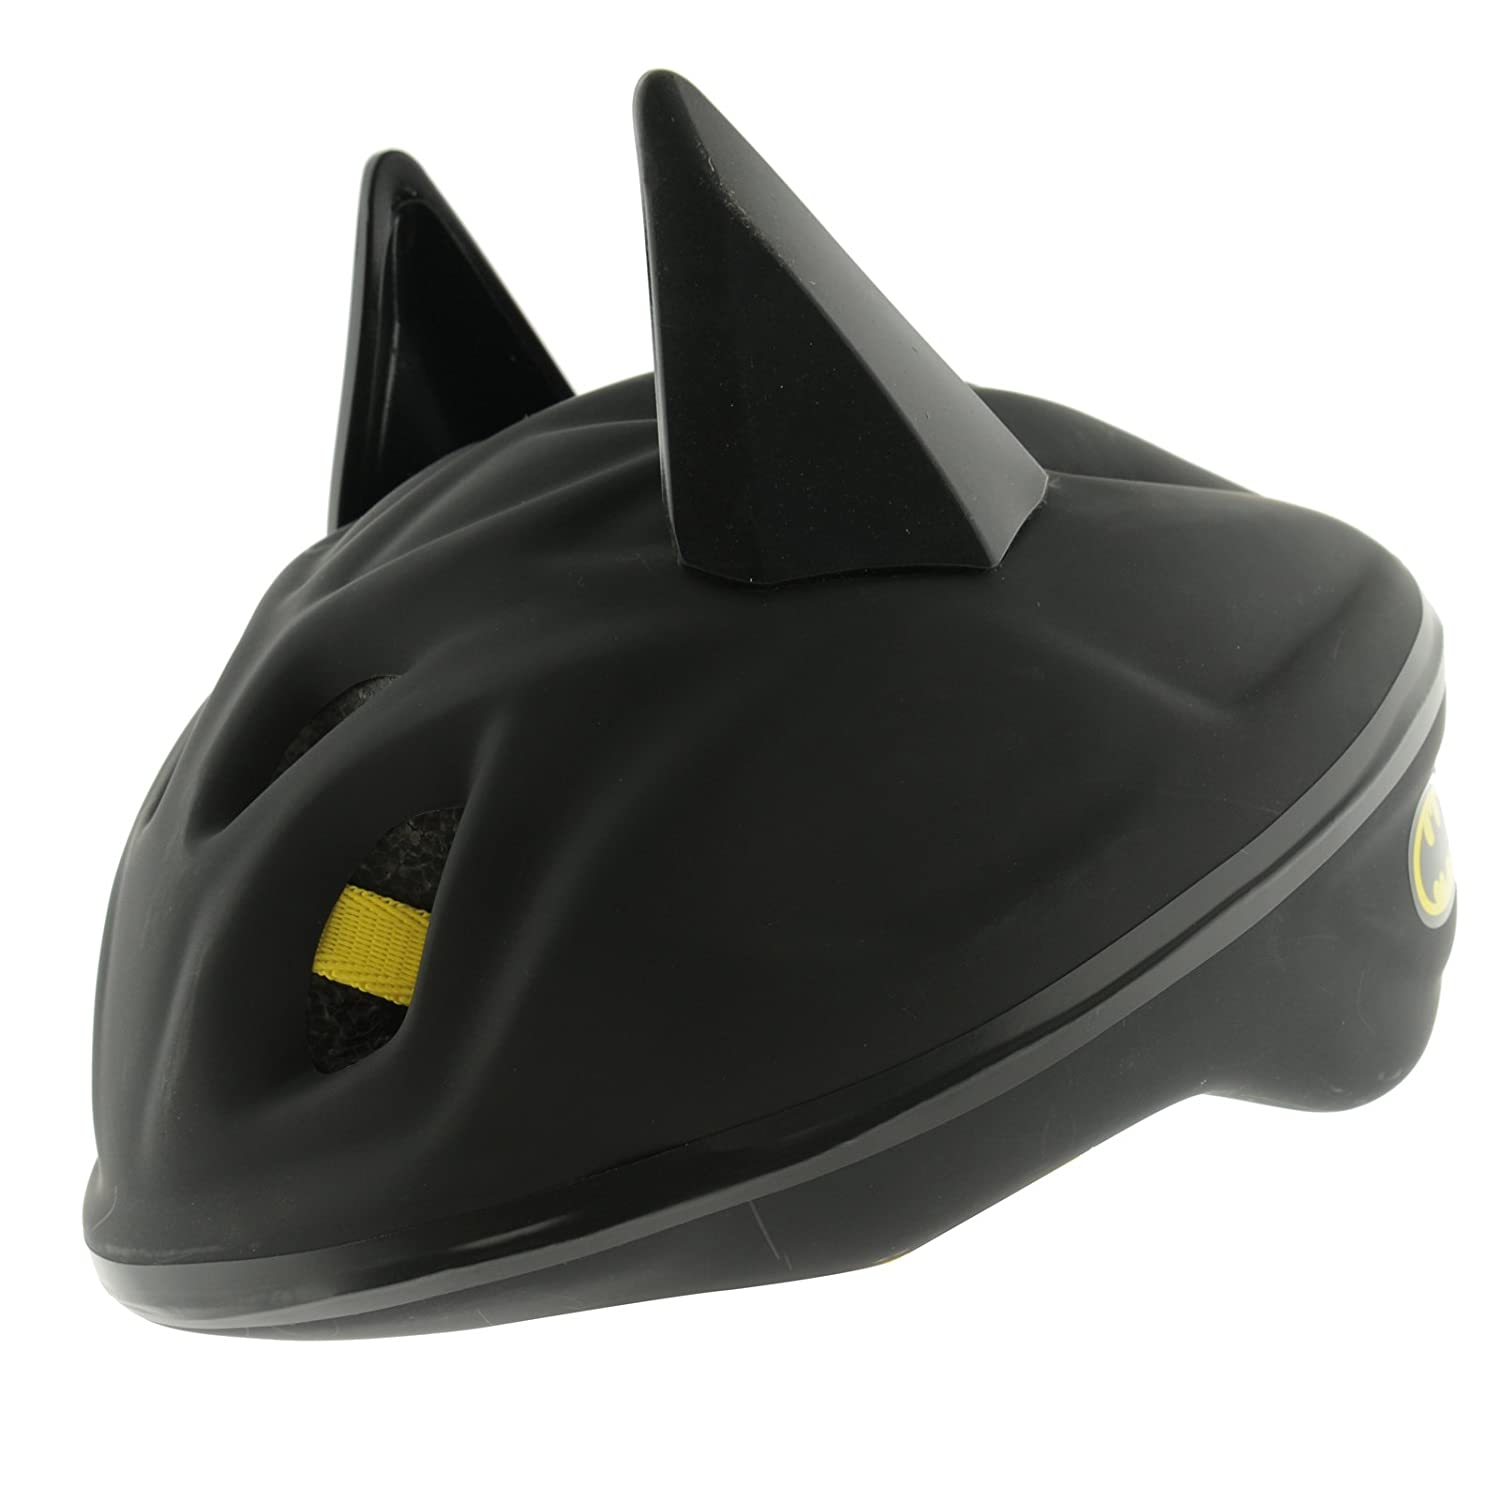 Amazon.com : DC Comics 3D Batman Bat Ears Safety Helmet Kids ...